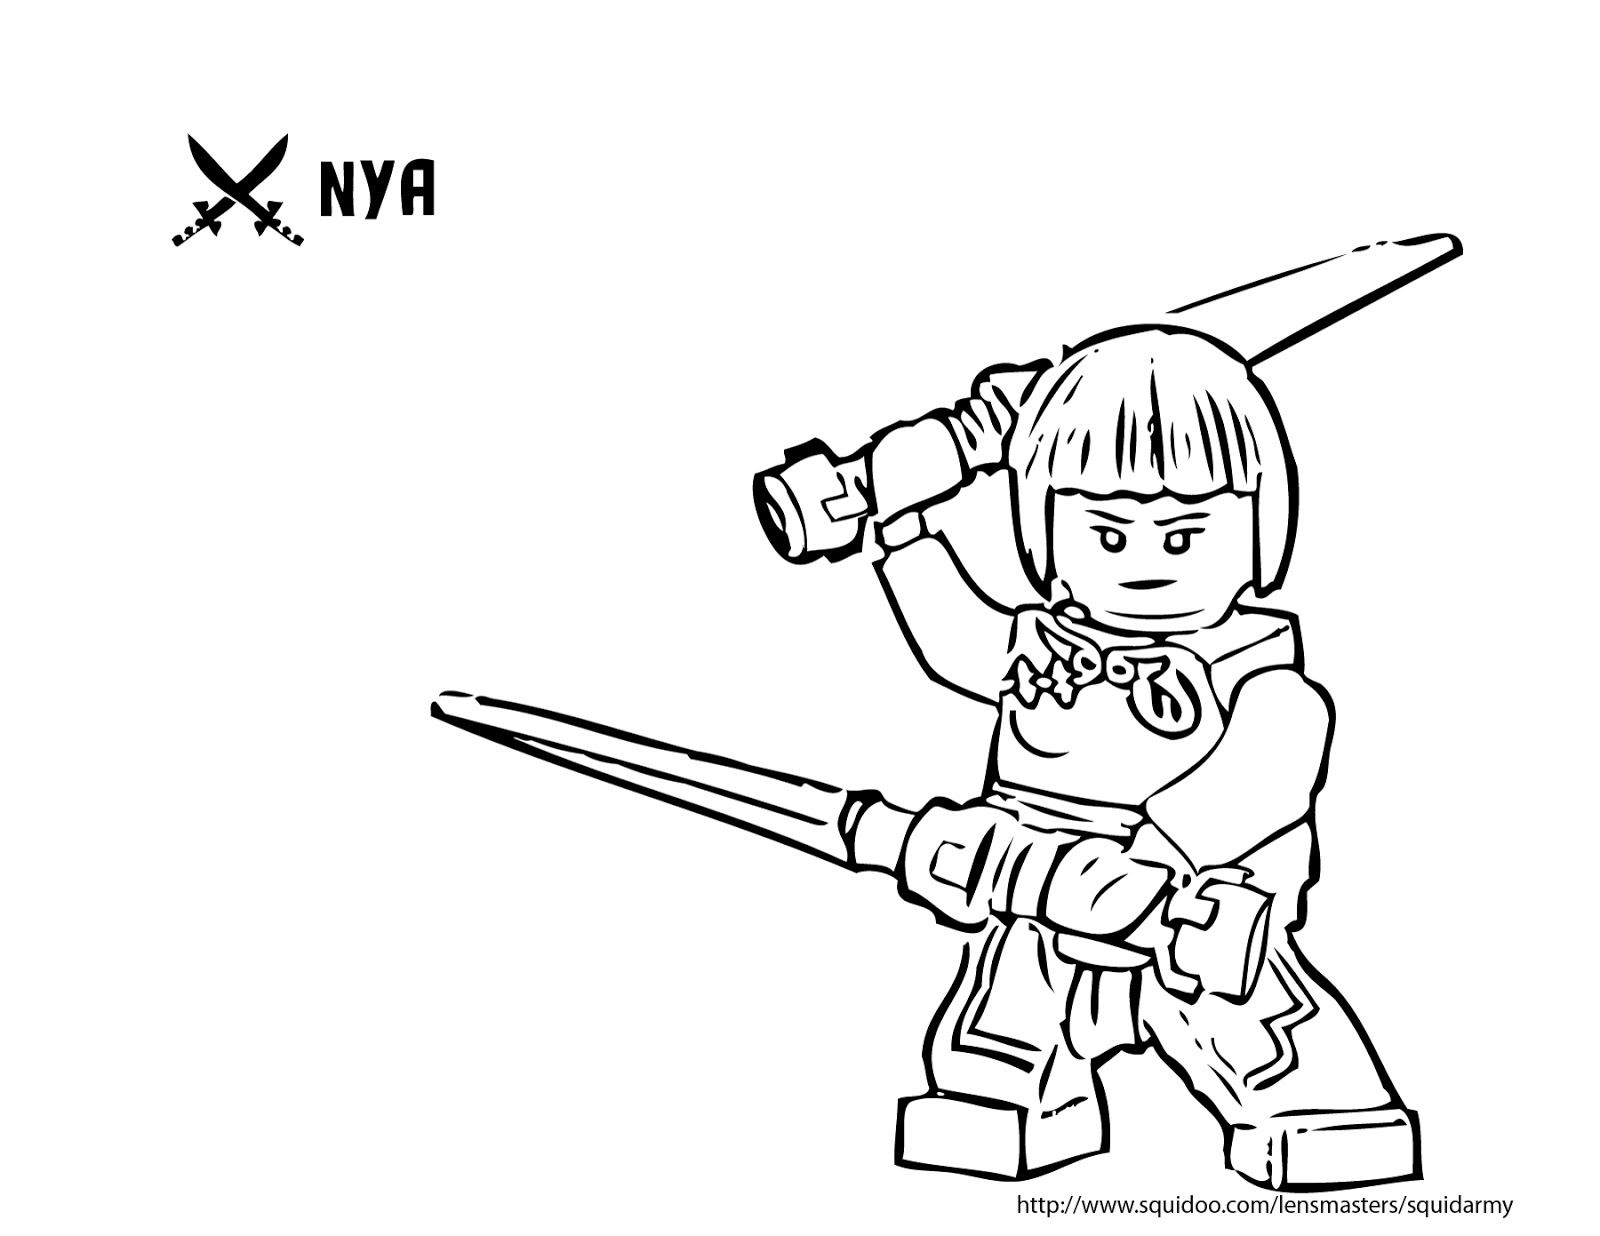 Ninjago Coloring Pages Nya Ninjago Coloring Pages Lego Coloring Pages Lego Ninjago Nya